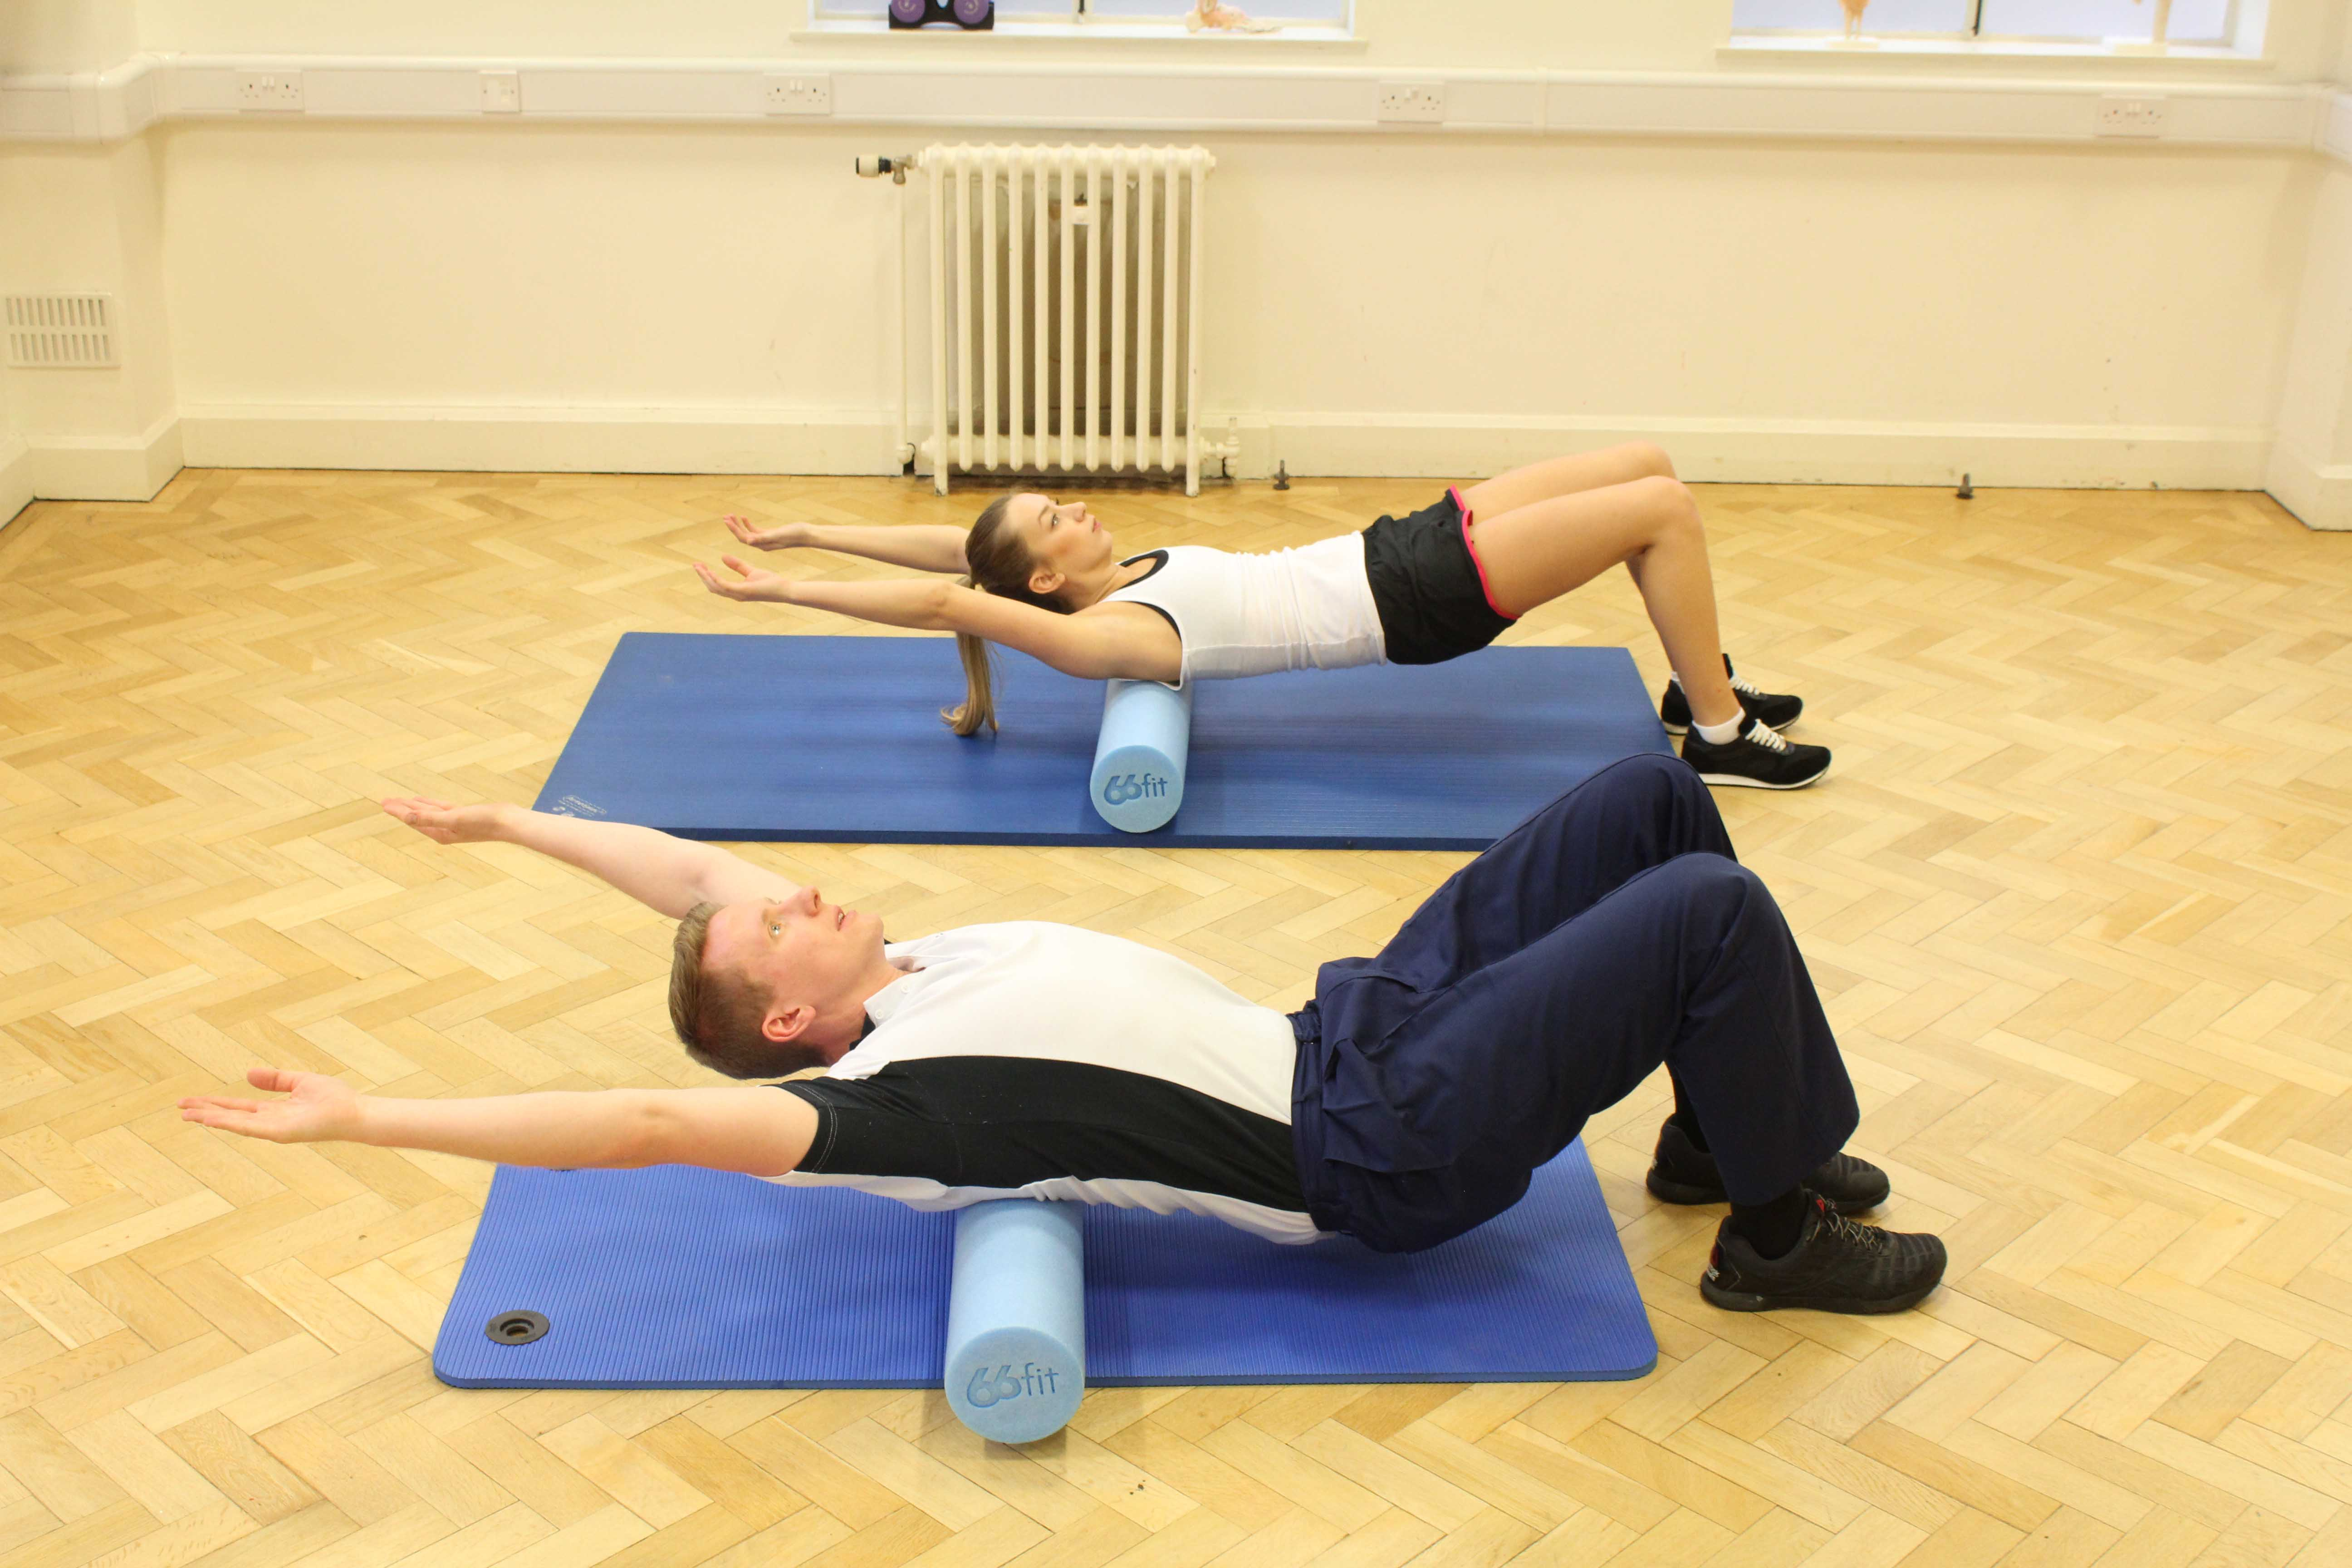 Passive stretches and mobilisations of the upper back using a therapy aid.